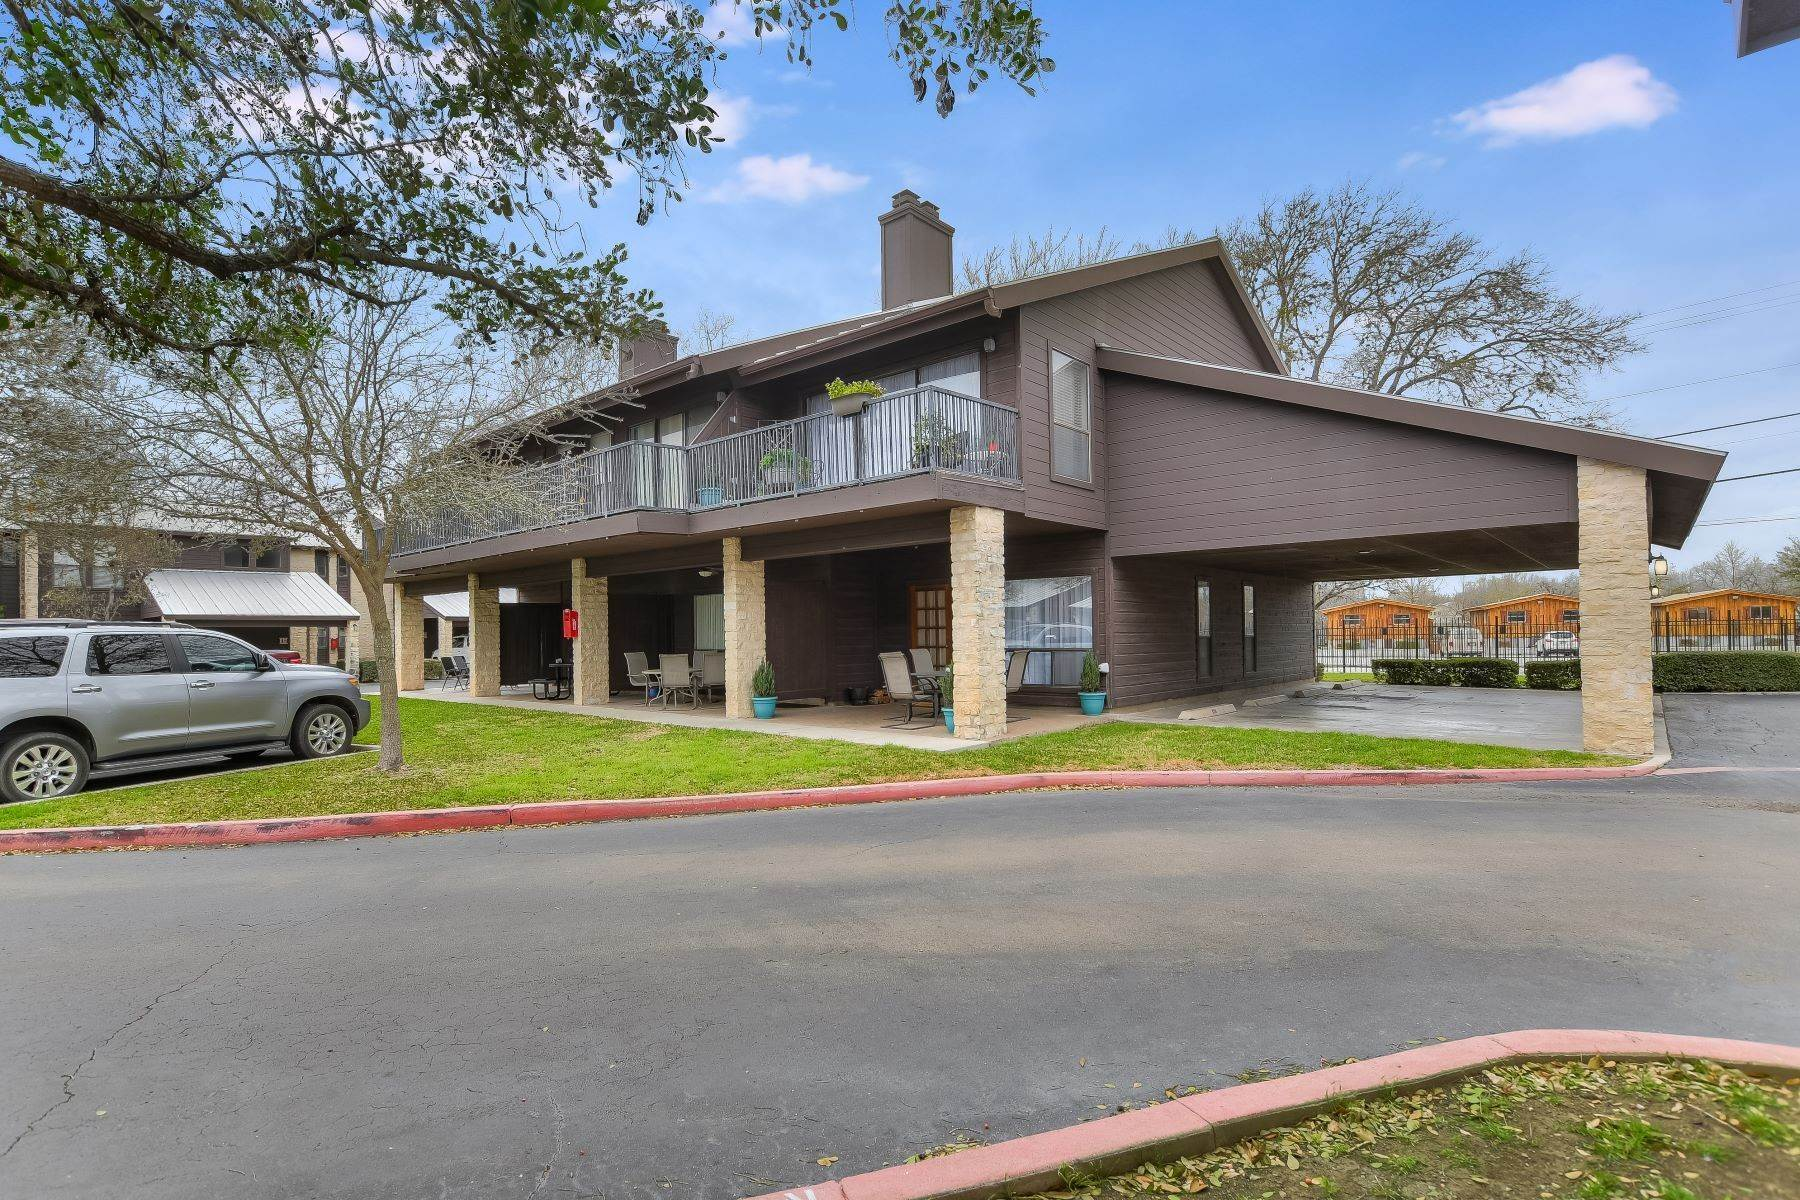 Condominiums for Sale at Comal River Condo 371 West Lincoln Street C-104 New Braunfels, Texas 78130 United States